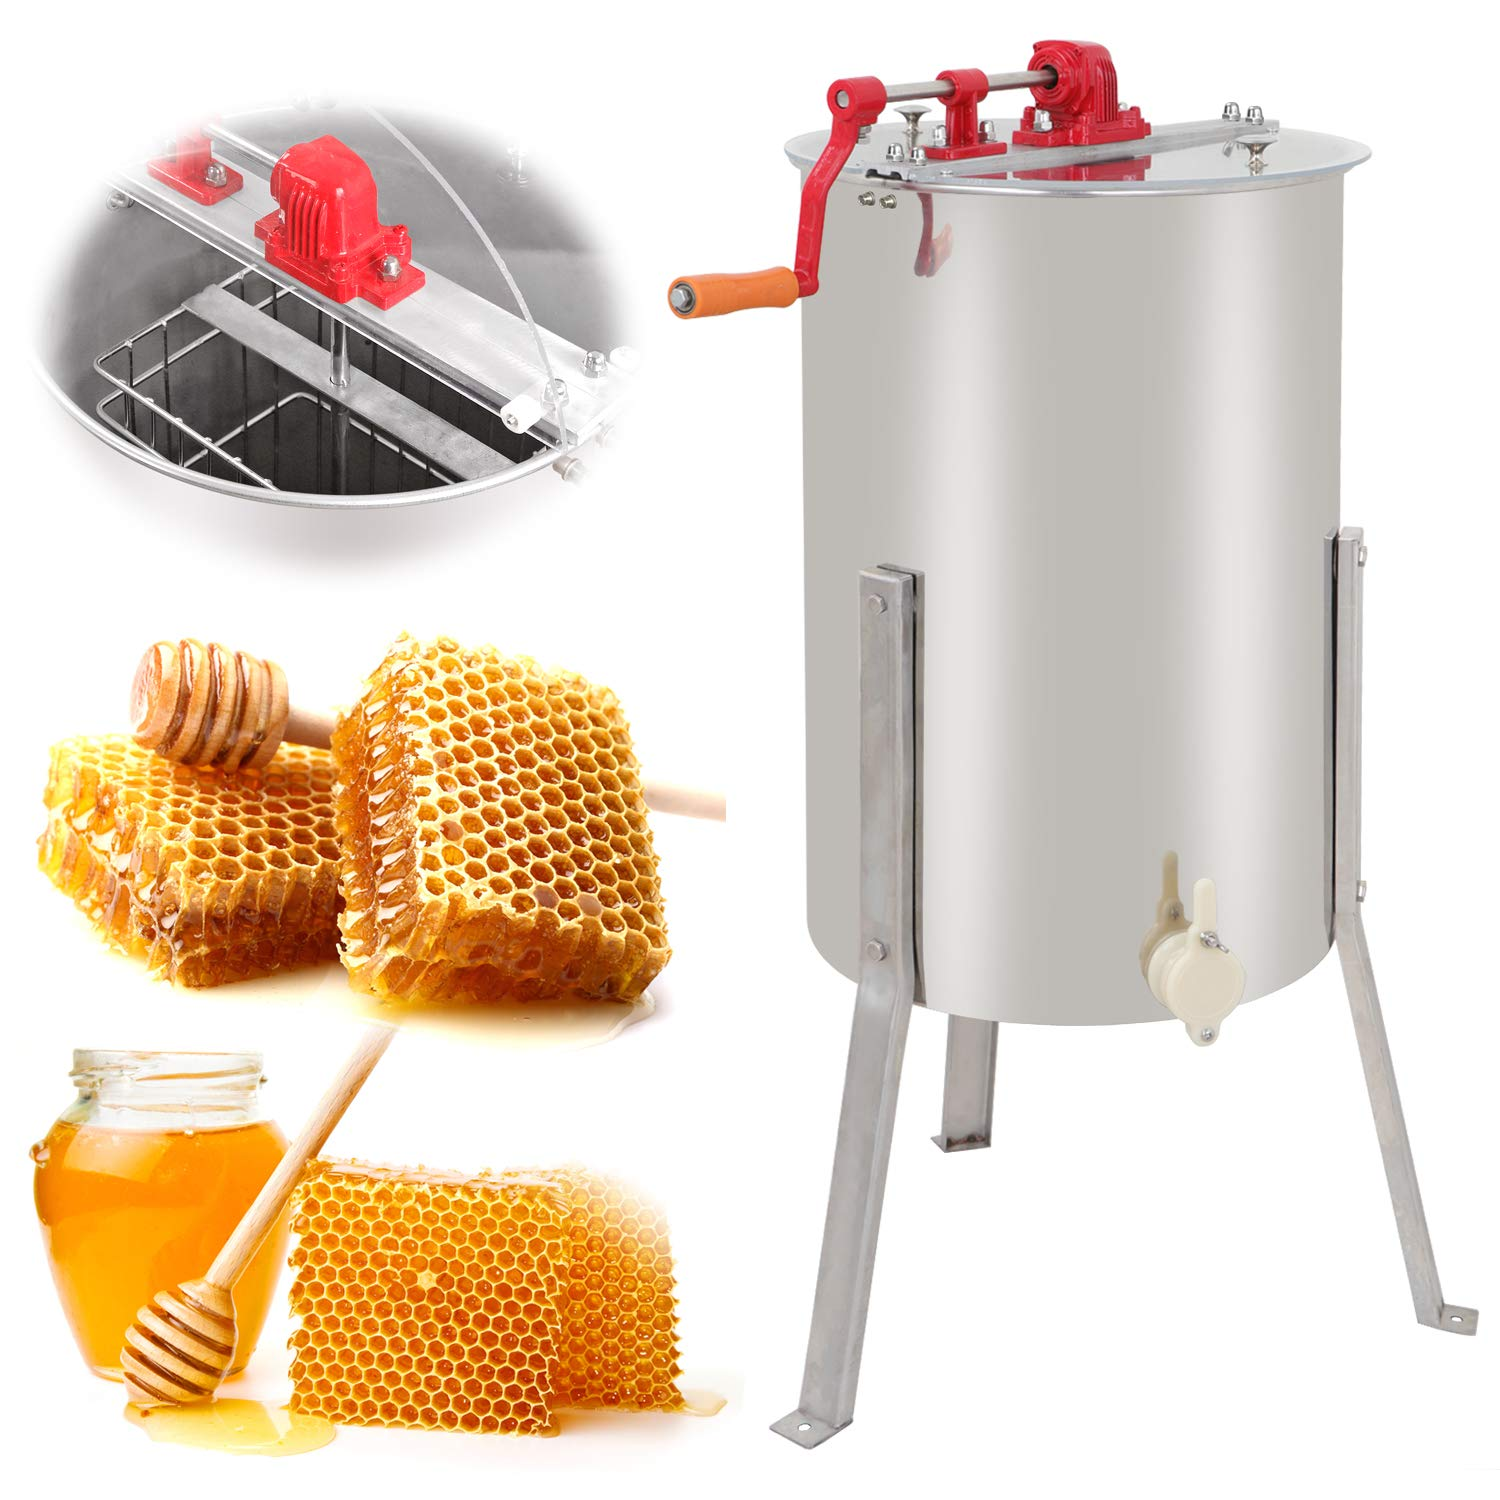 SUPER DEAL Pro 2 Frame Stainless Steel Honey Extractor Beekeeping Equipment Honeycomb Drum Bee Honey Harvest by SUPER DEAL